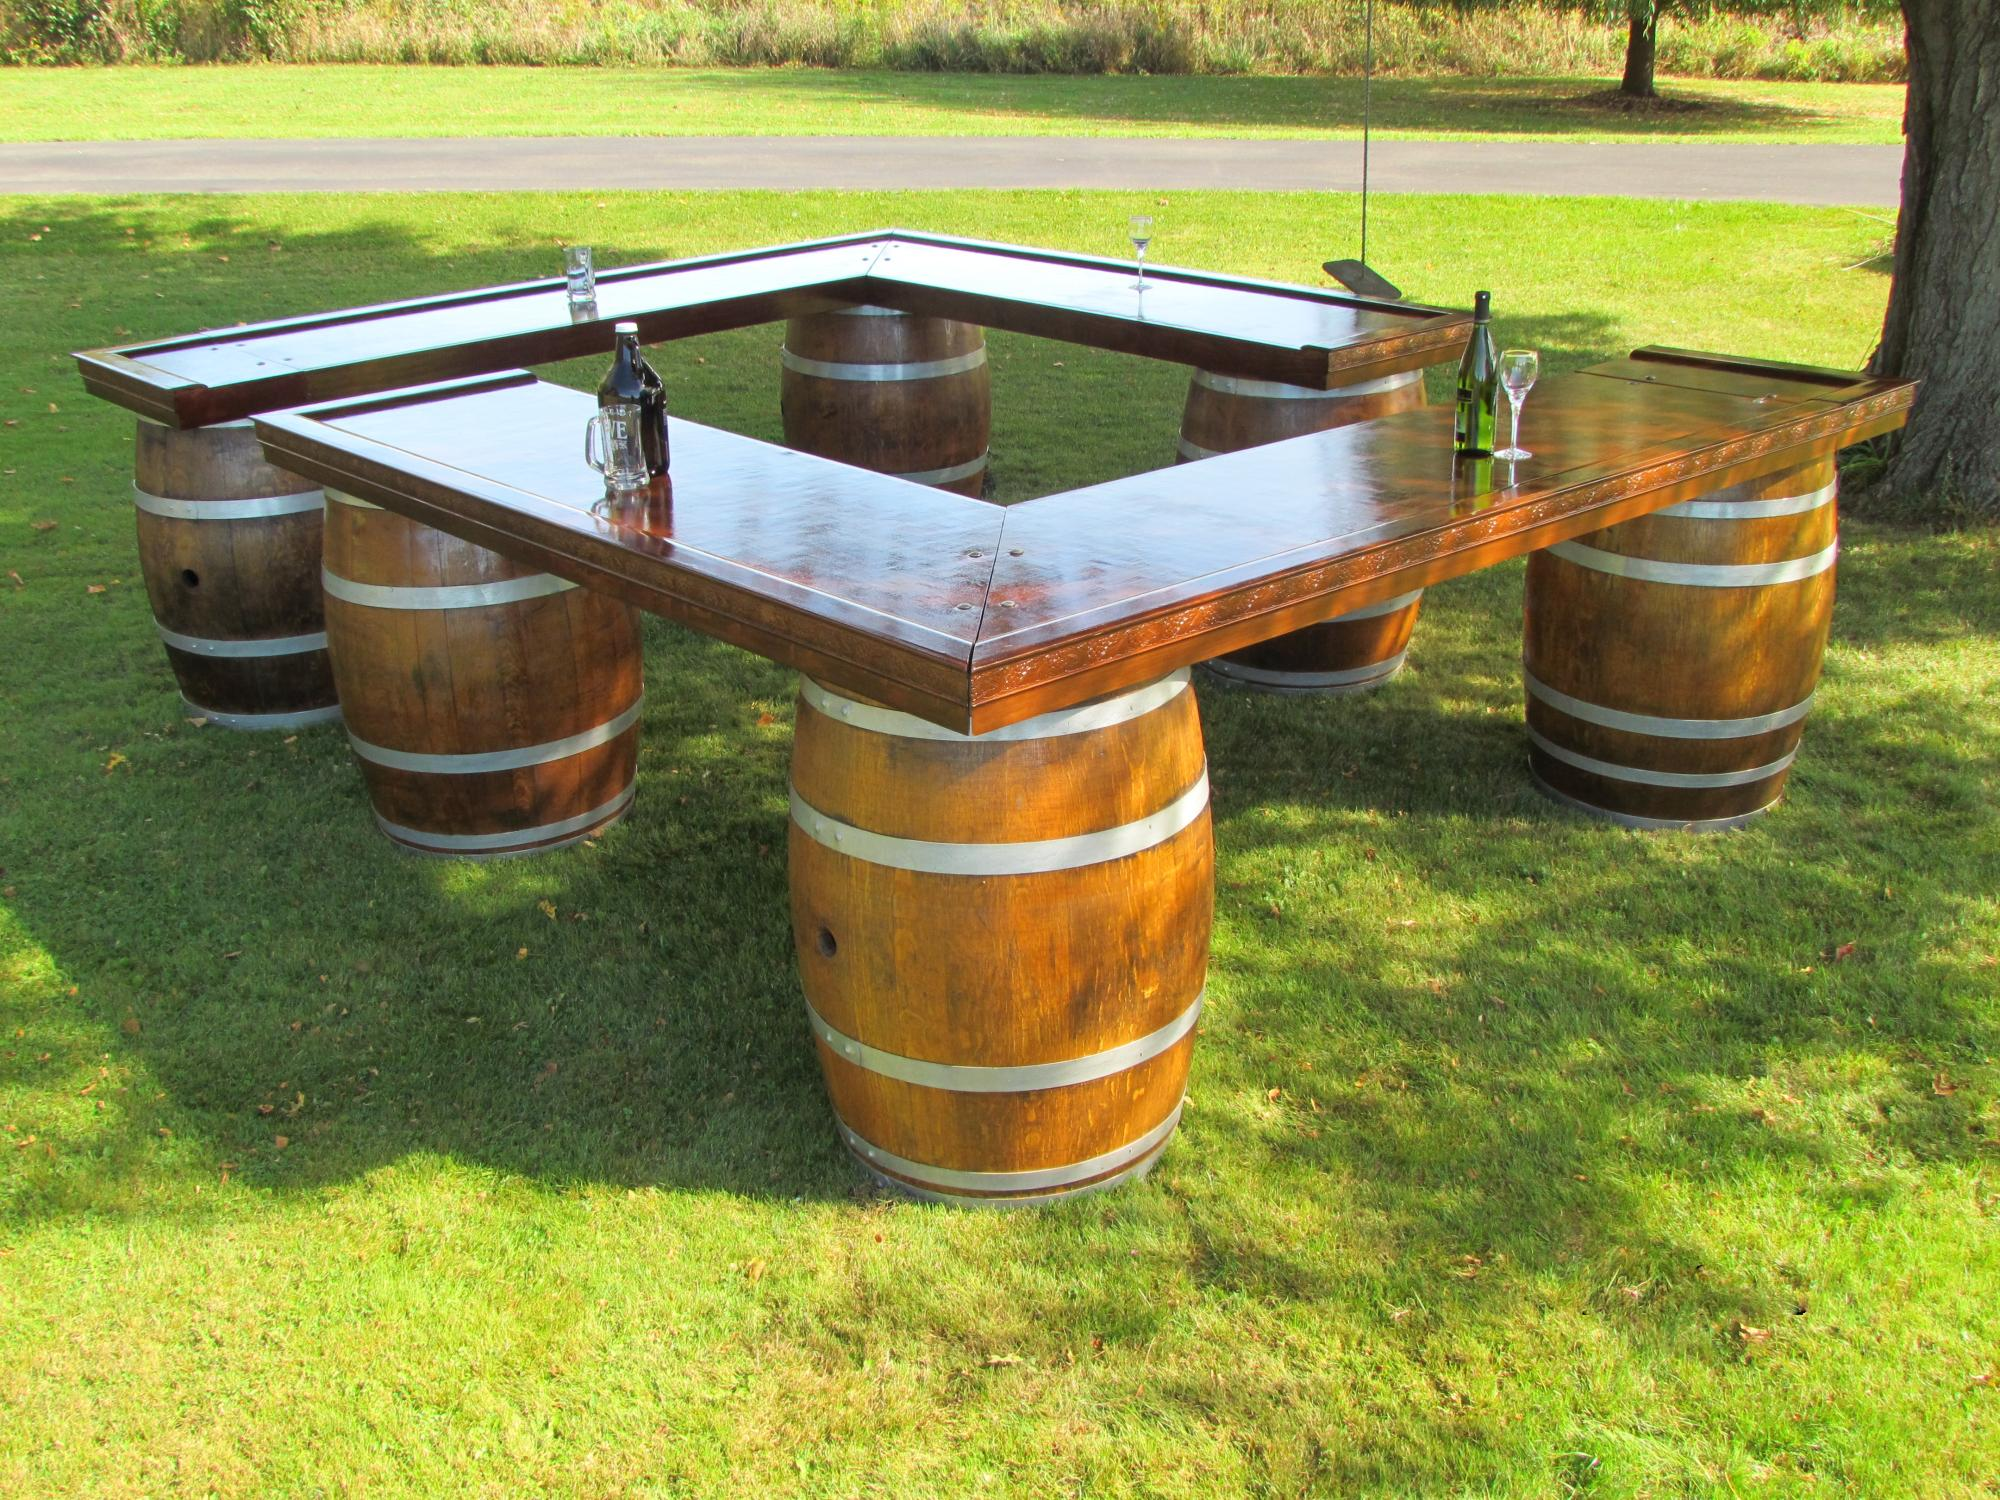 The Brut: Utilizing six refinished oak wine barrels for the base. Adds rustic charm to any event.